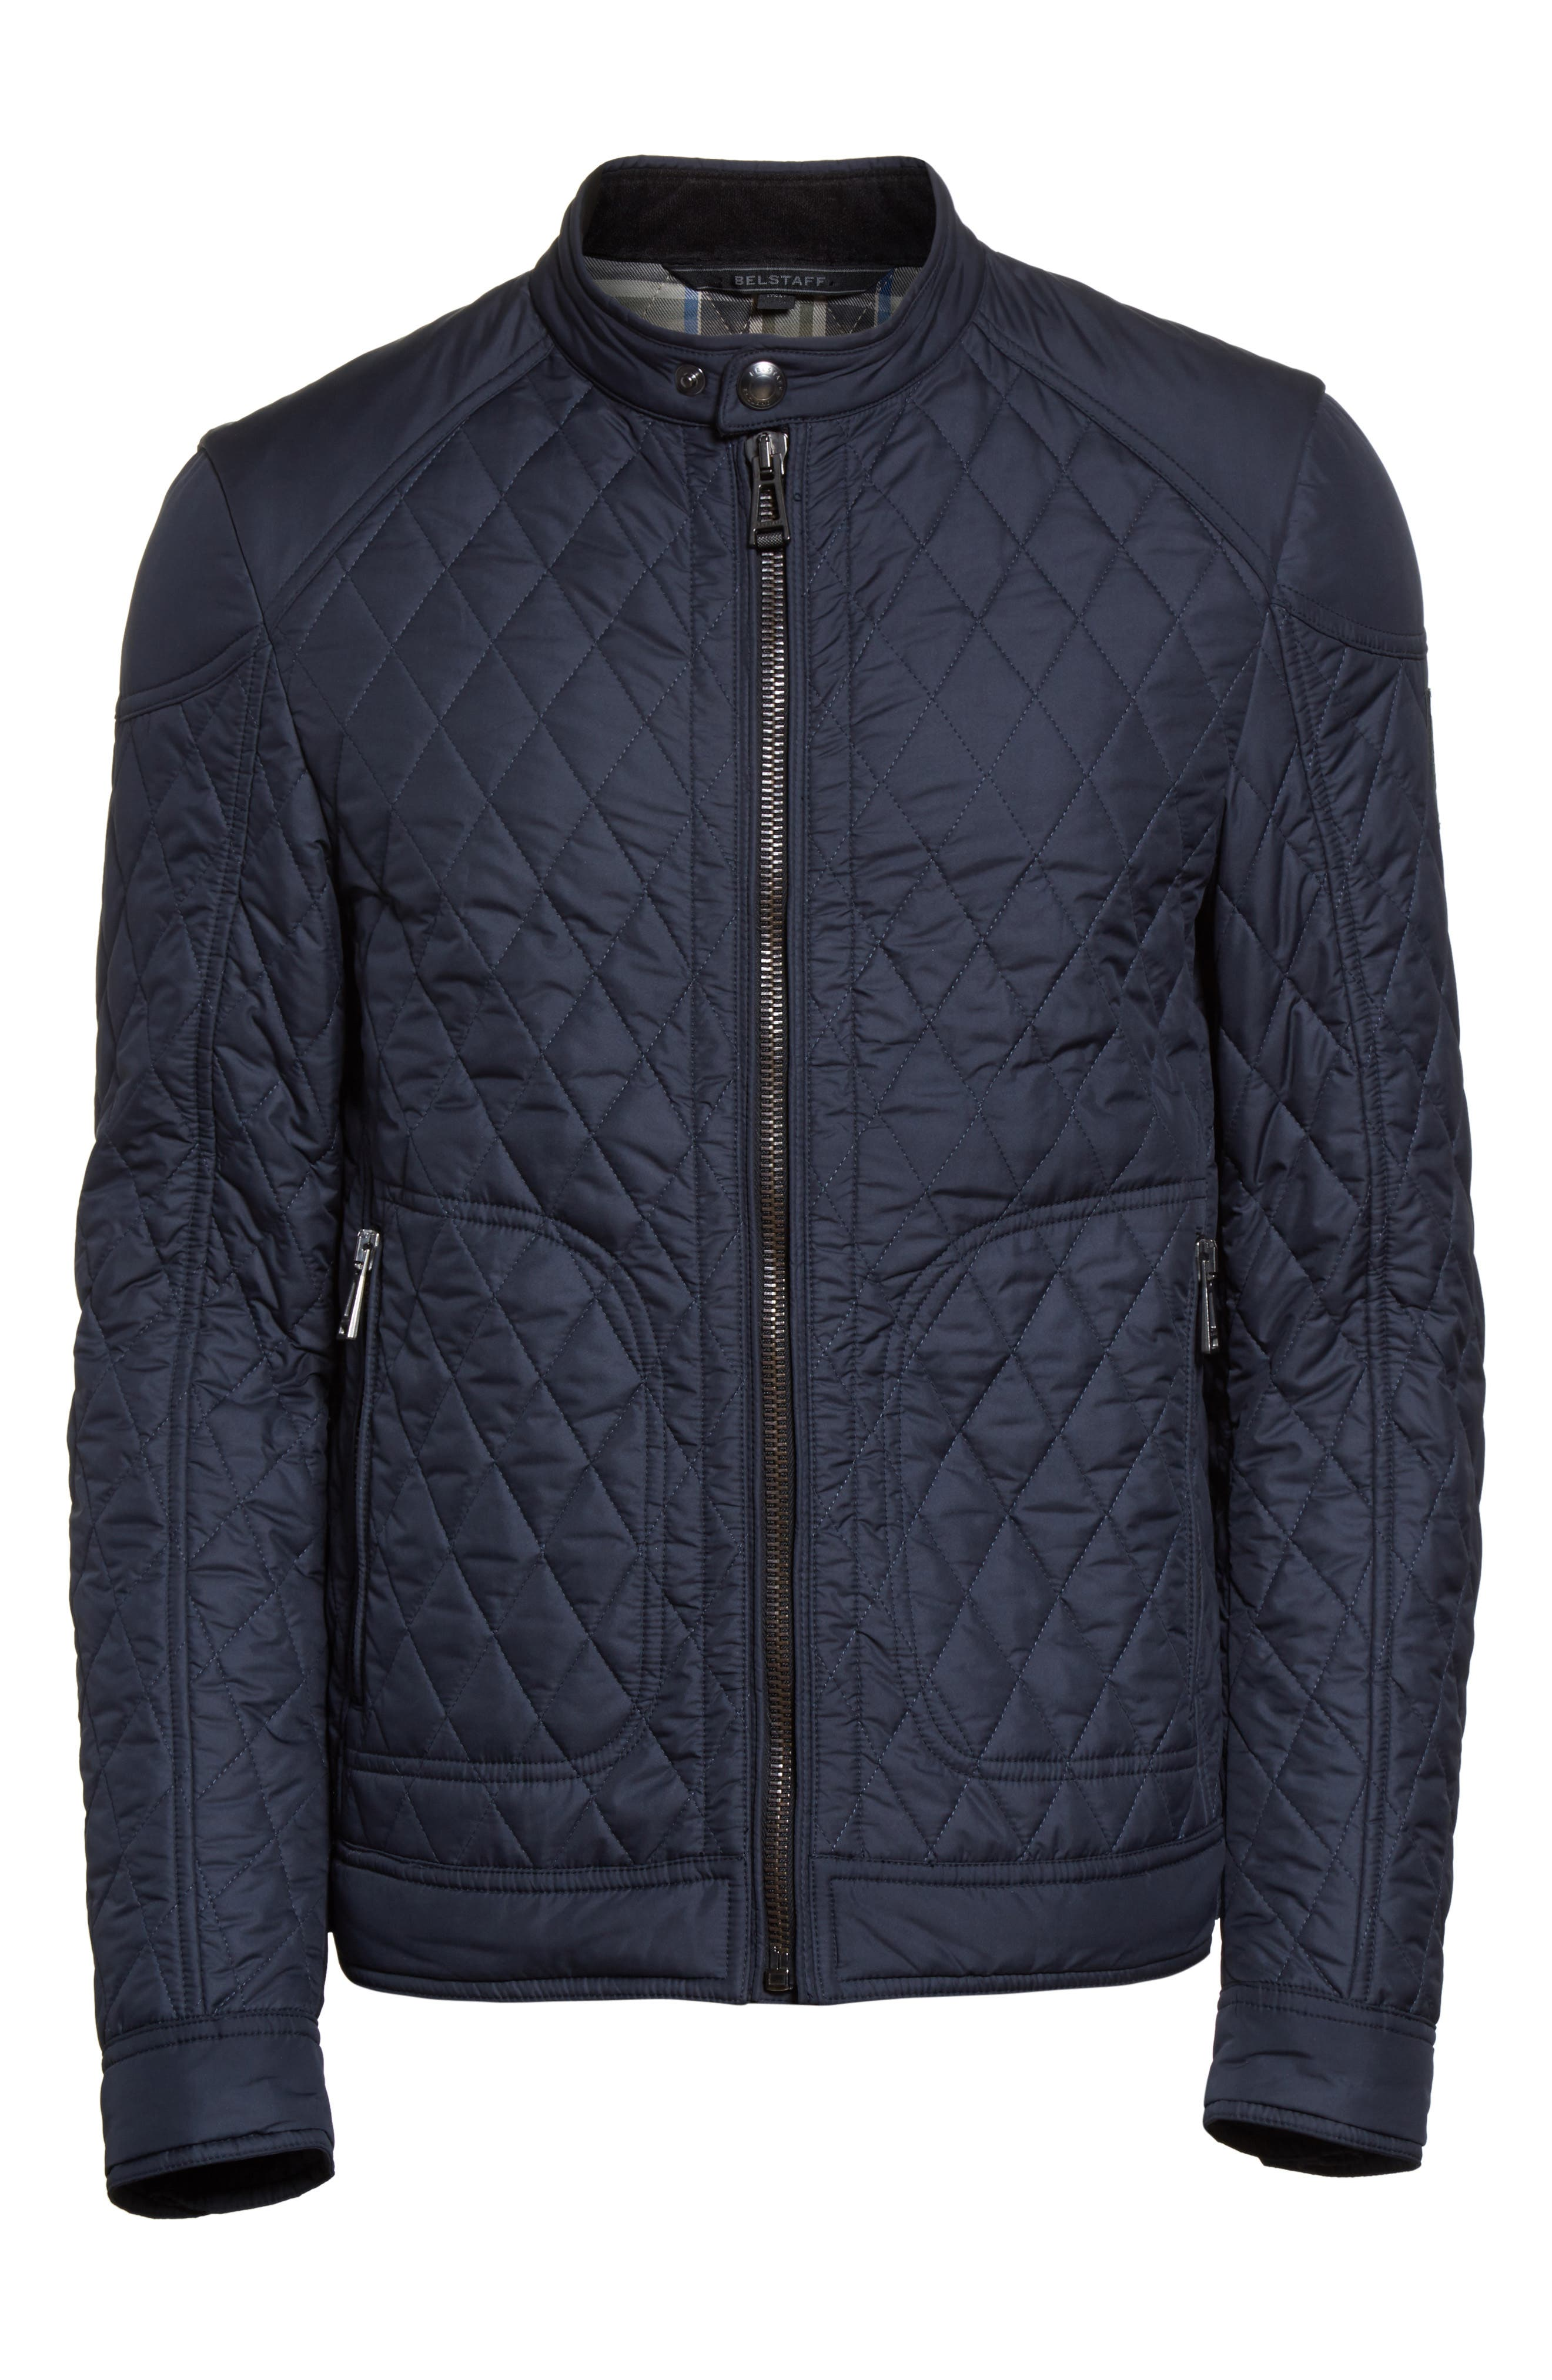 Bramley 2.0 Quilted Jacket,                             Alternate thumbnail 6, color,                             Dark Navy